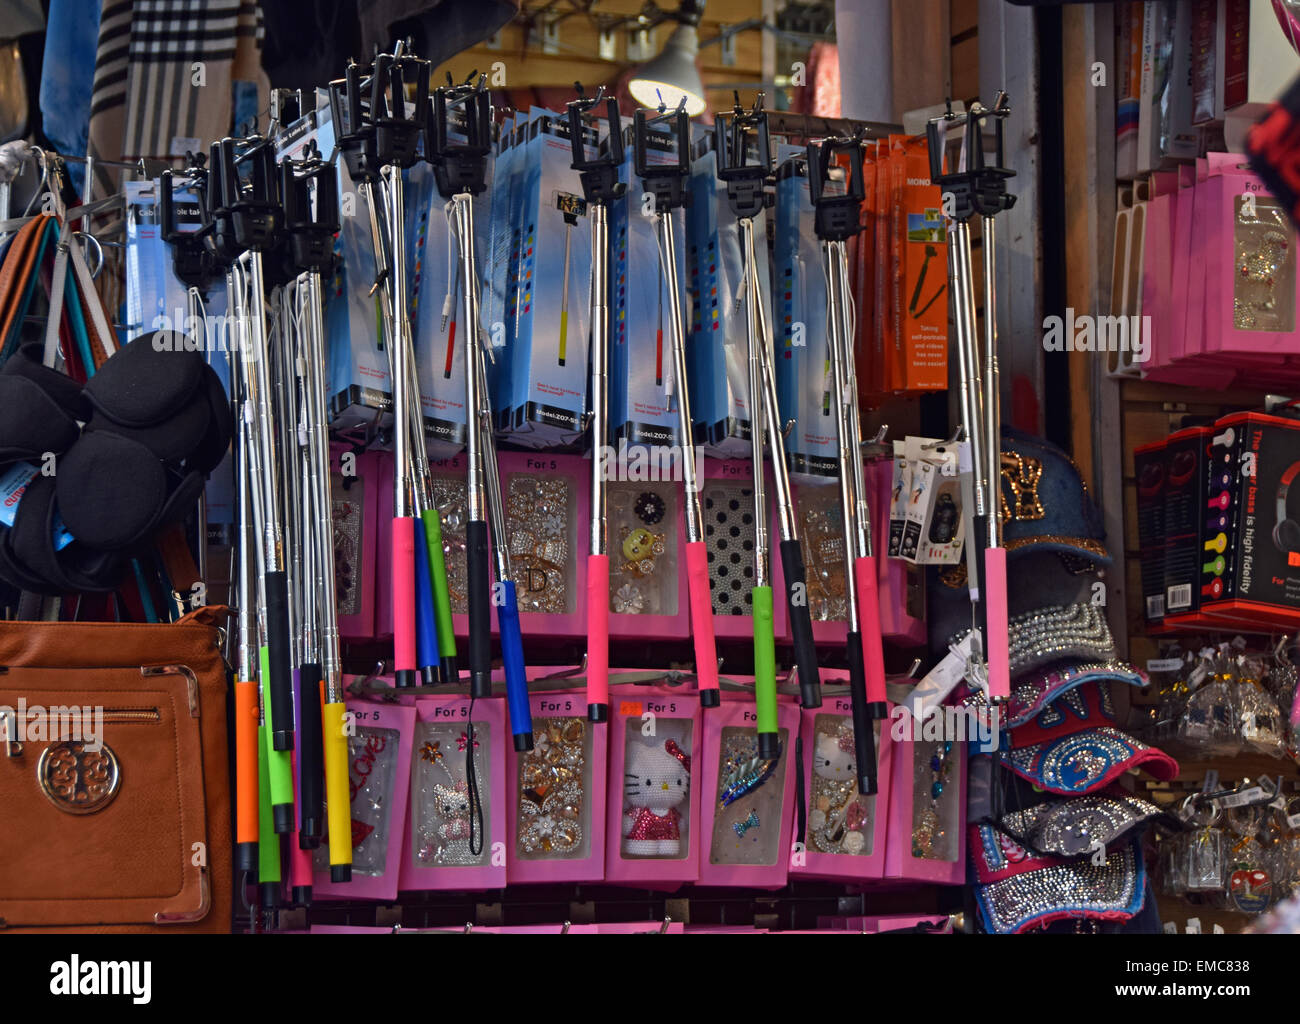 a0e239279fb1 Selfie sticks for sale at a tourist shop on Canal Street in Stock ...